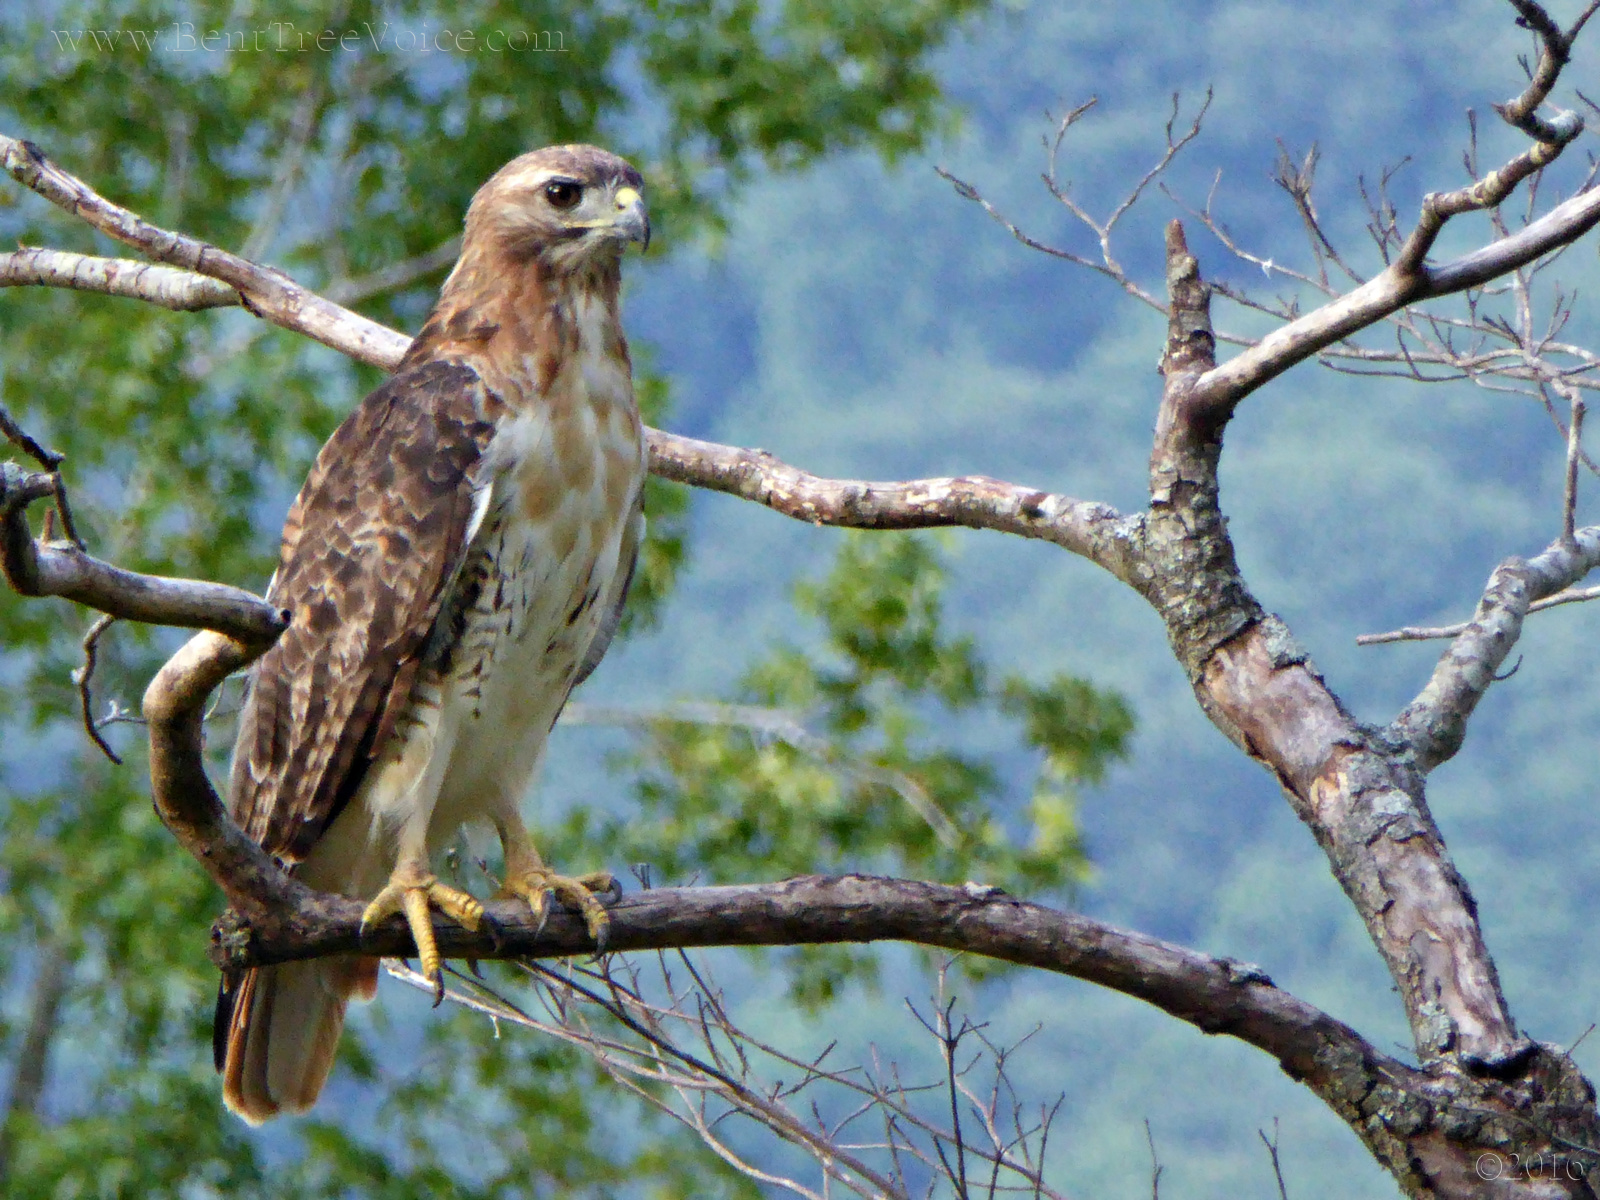 August 1, 2016 - Red-tailed Hawk in Bent Tree